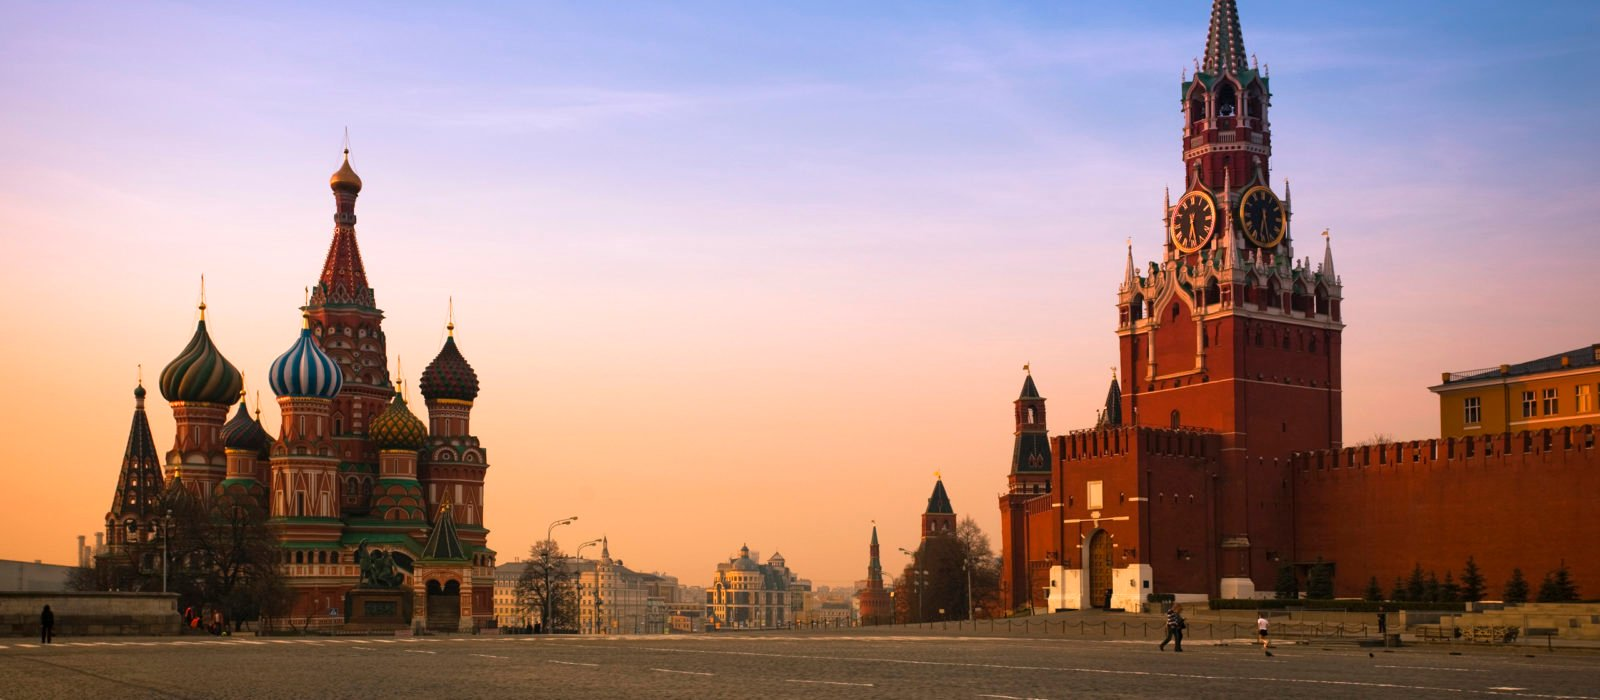 red-square-moscow-sunrise-russia